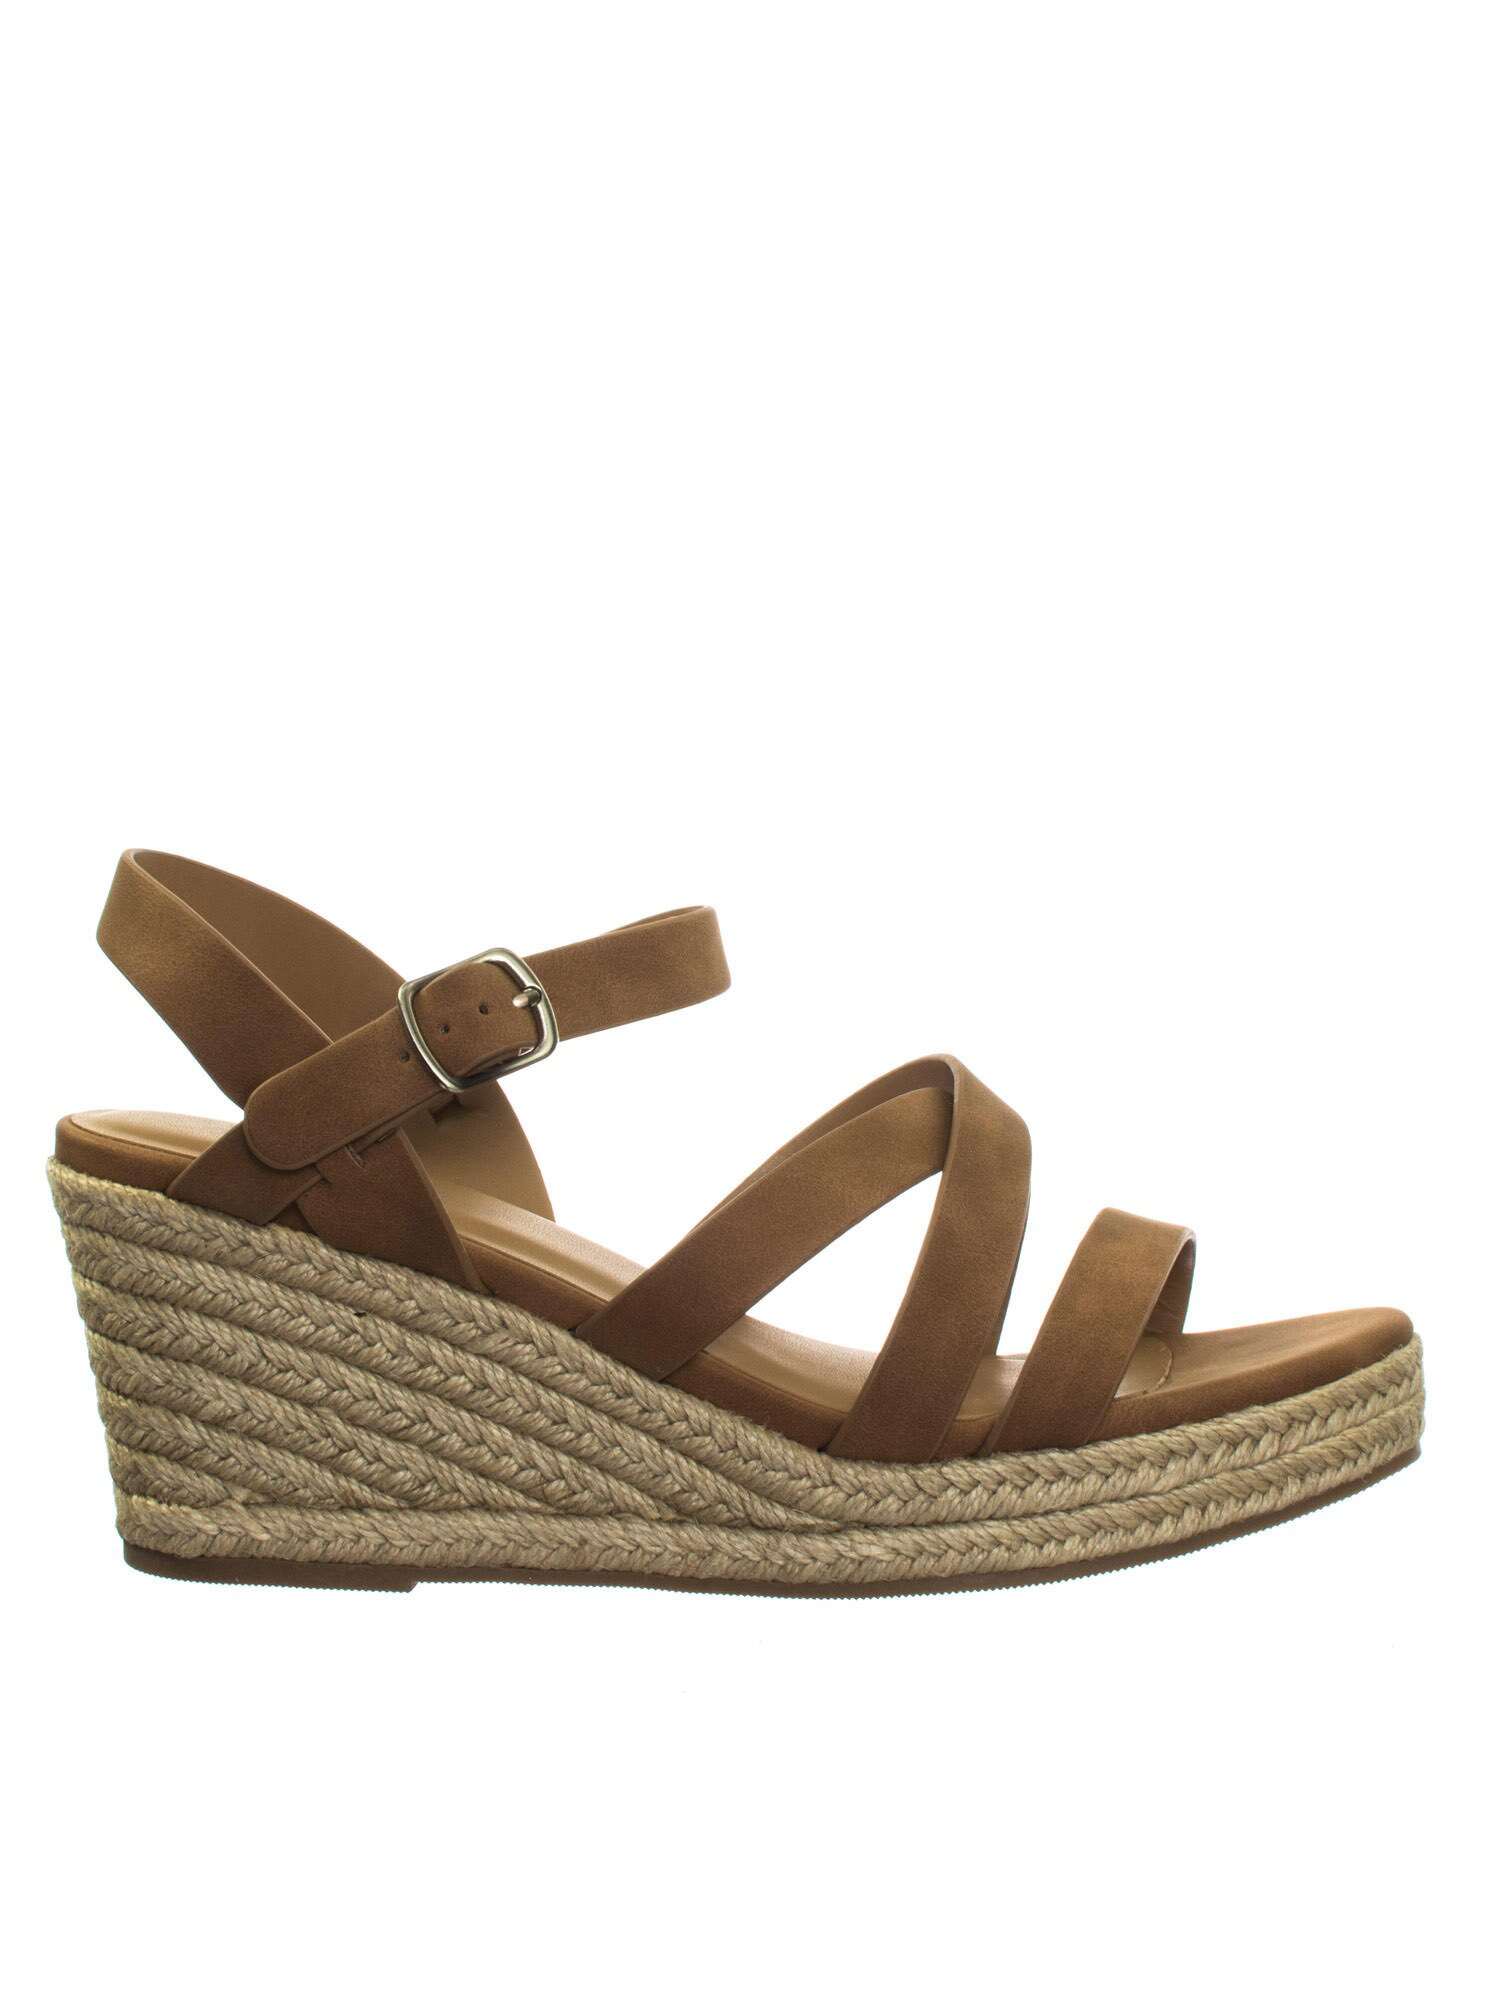 a8108f64214 Jubilee Tan Brown by City Classified Espadrille Rope Jute Wrap Platform  Wedge Open Toe Dress Sandal